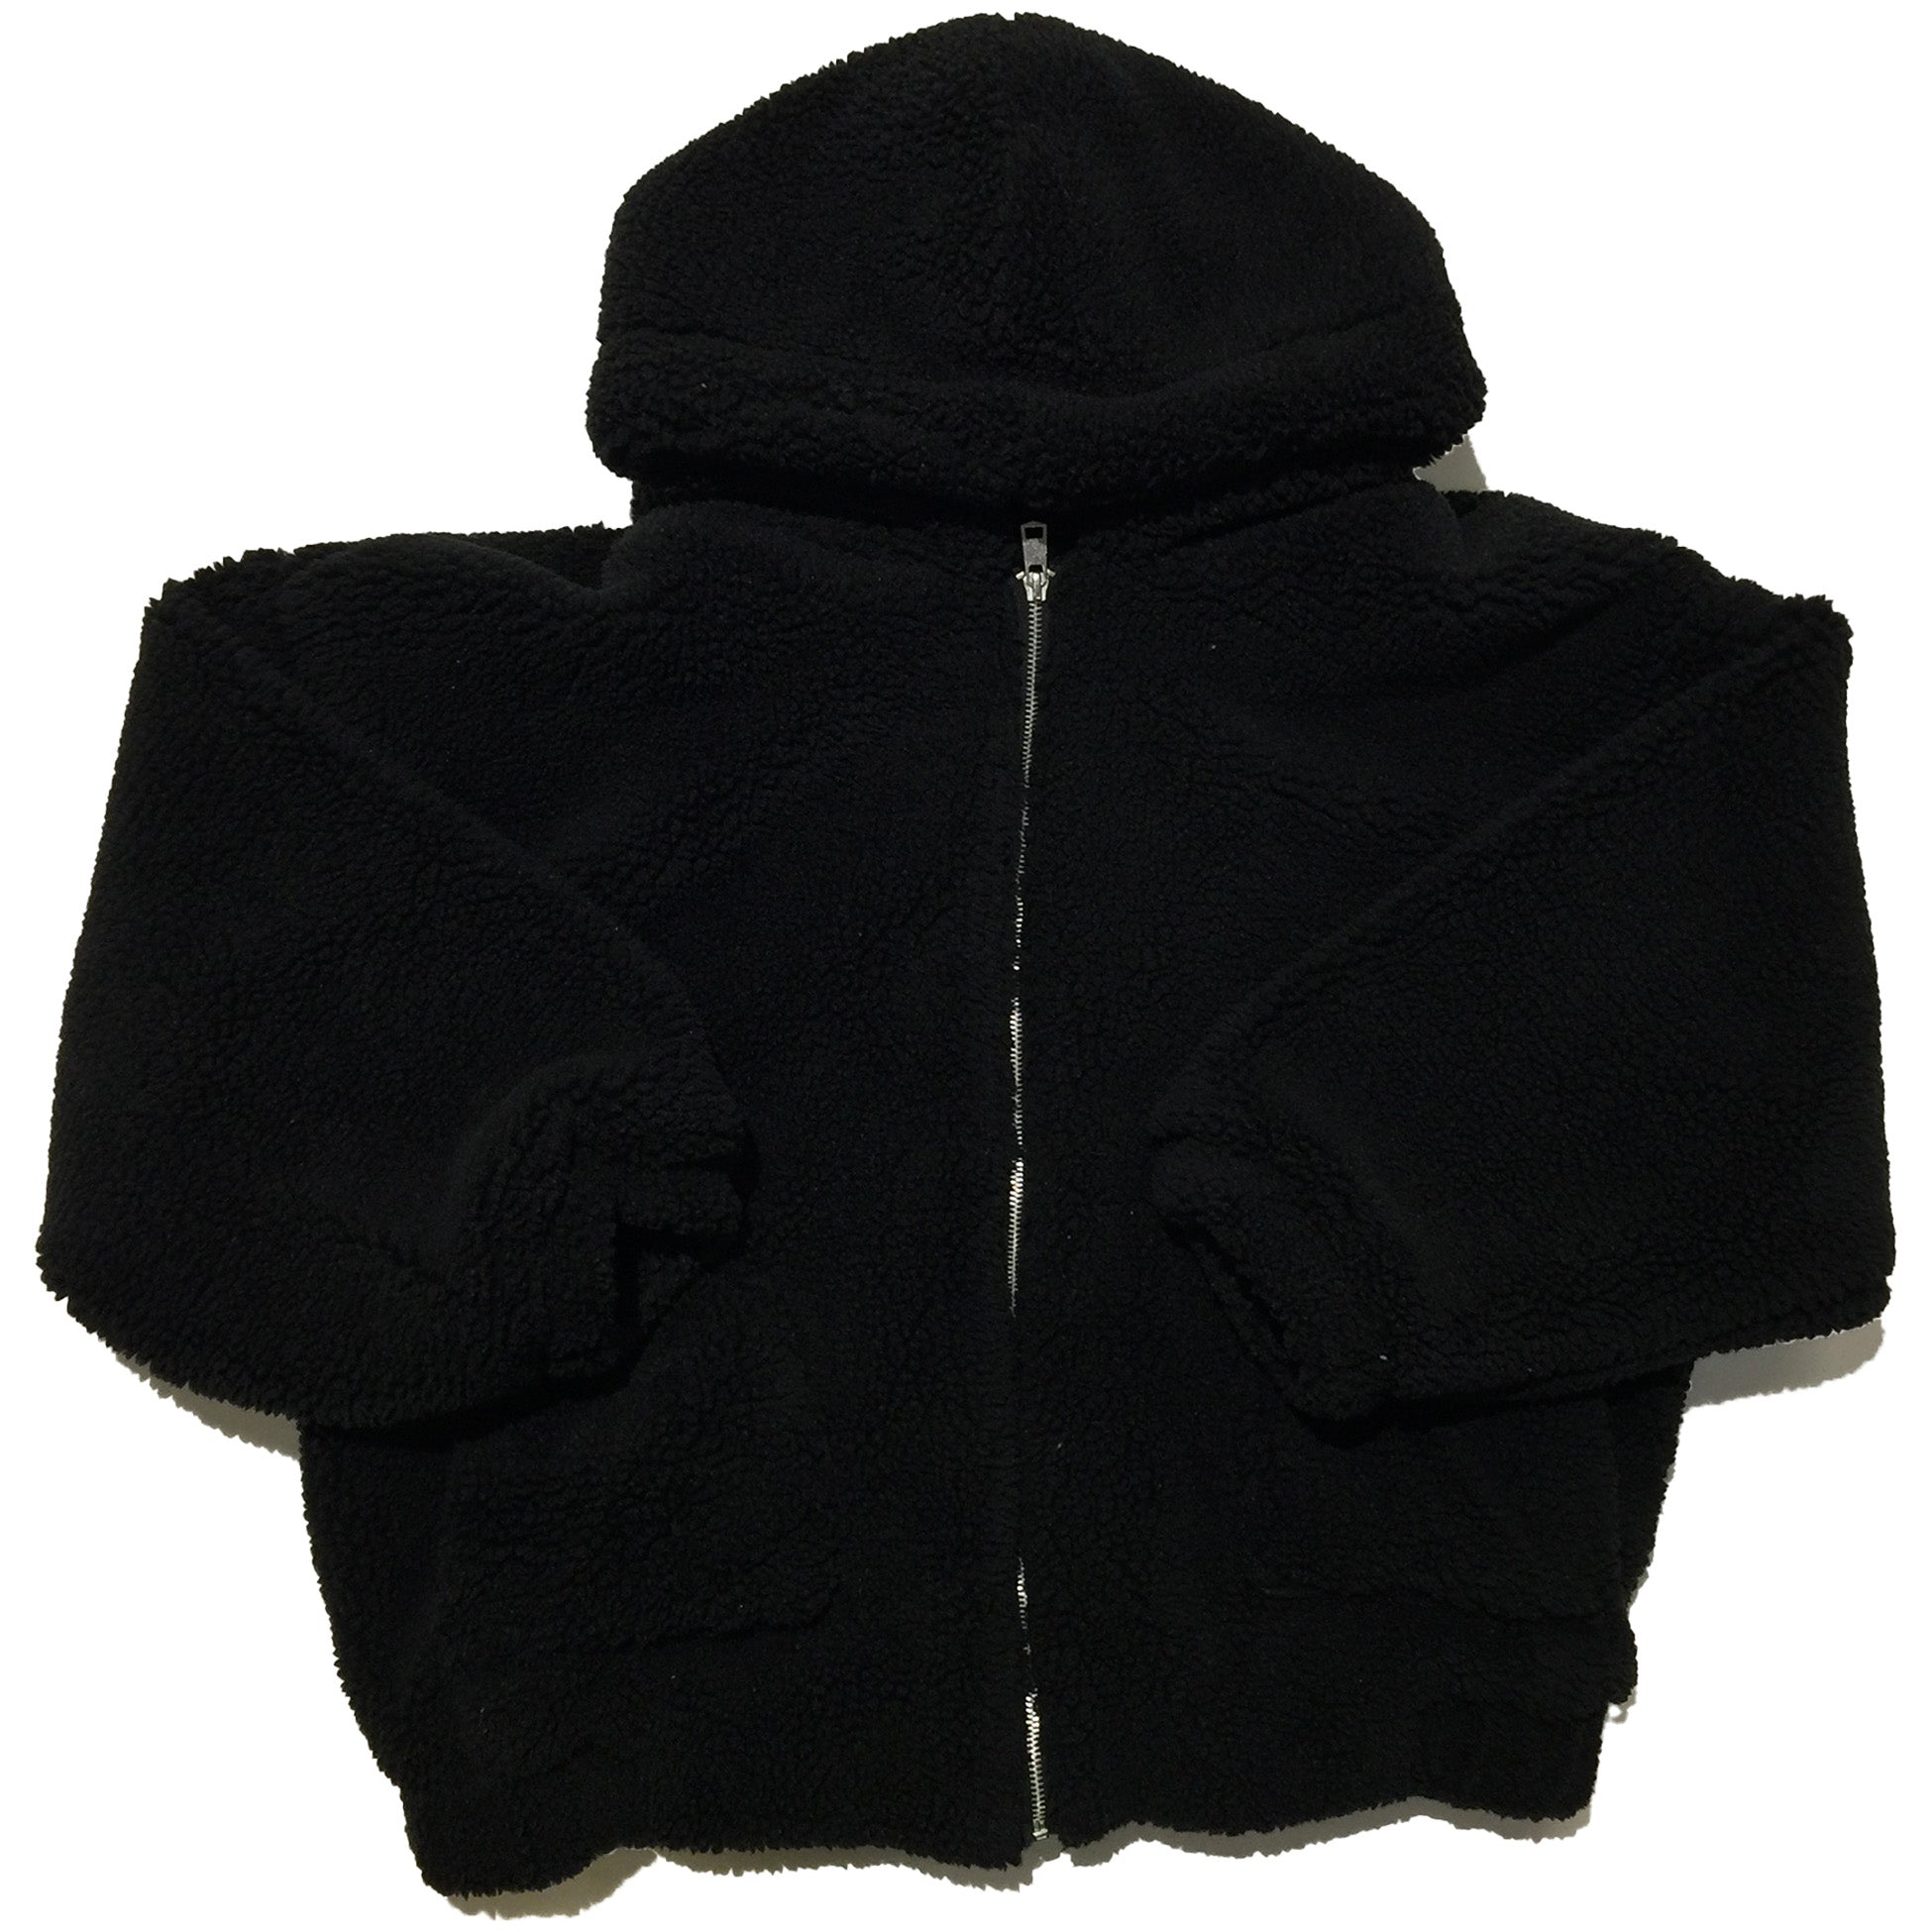 Super Thick Black Fleece Hoodie